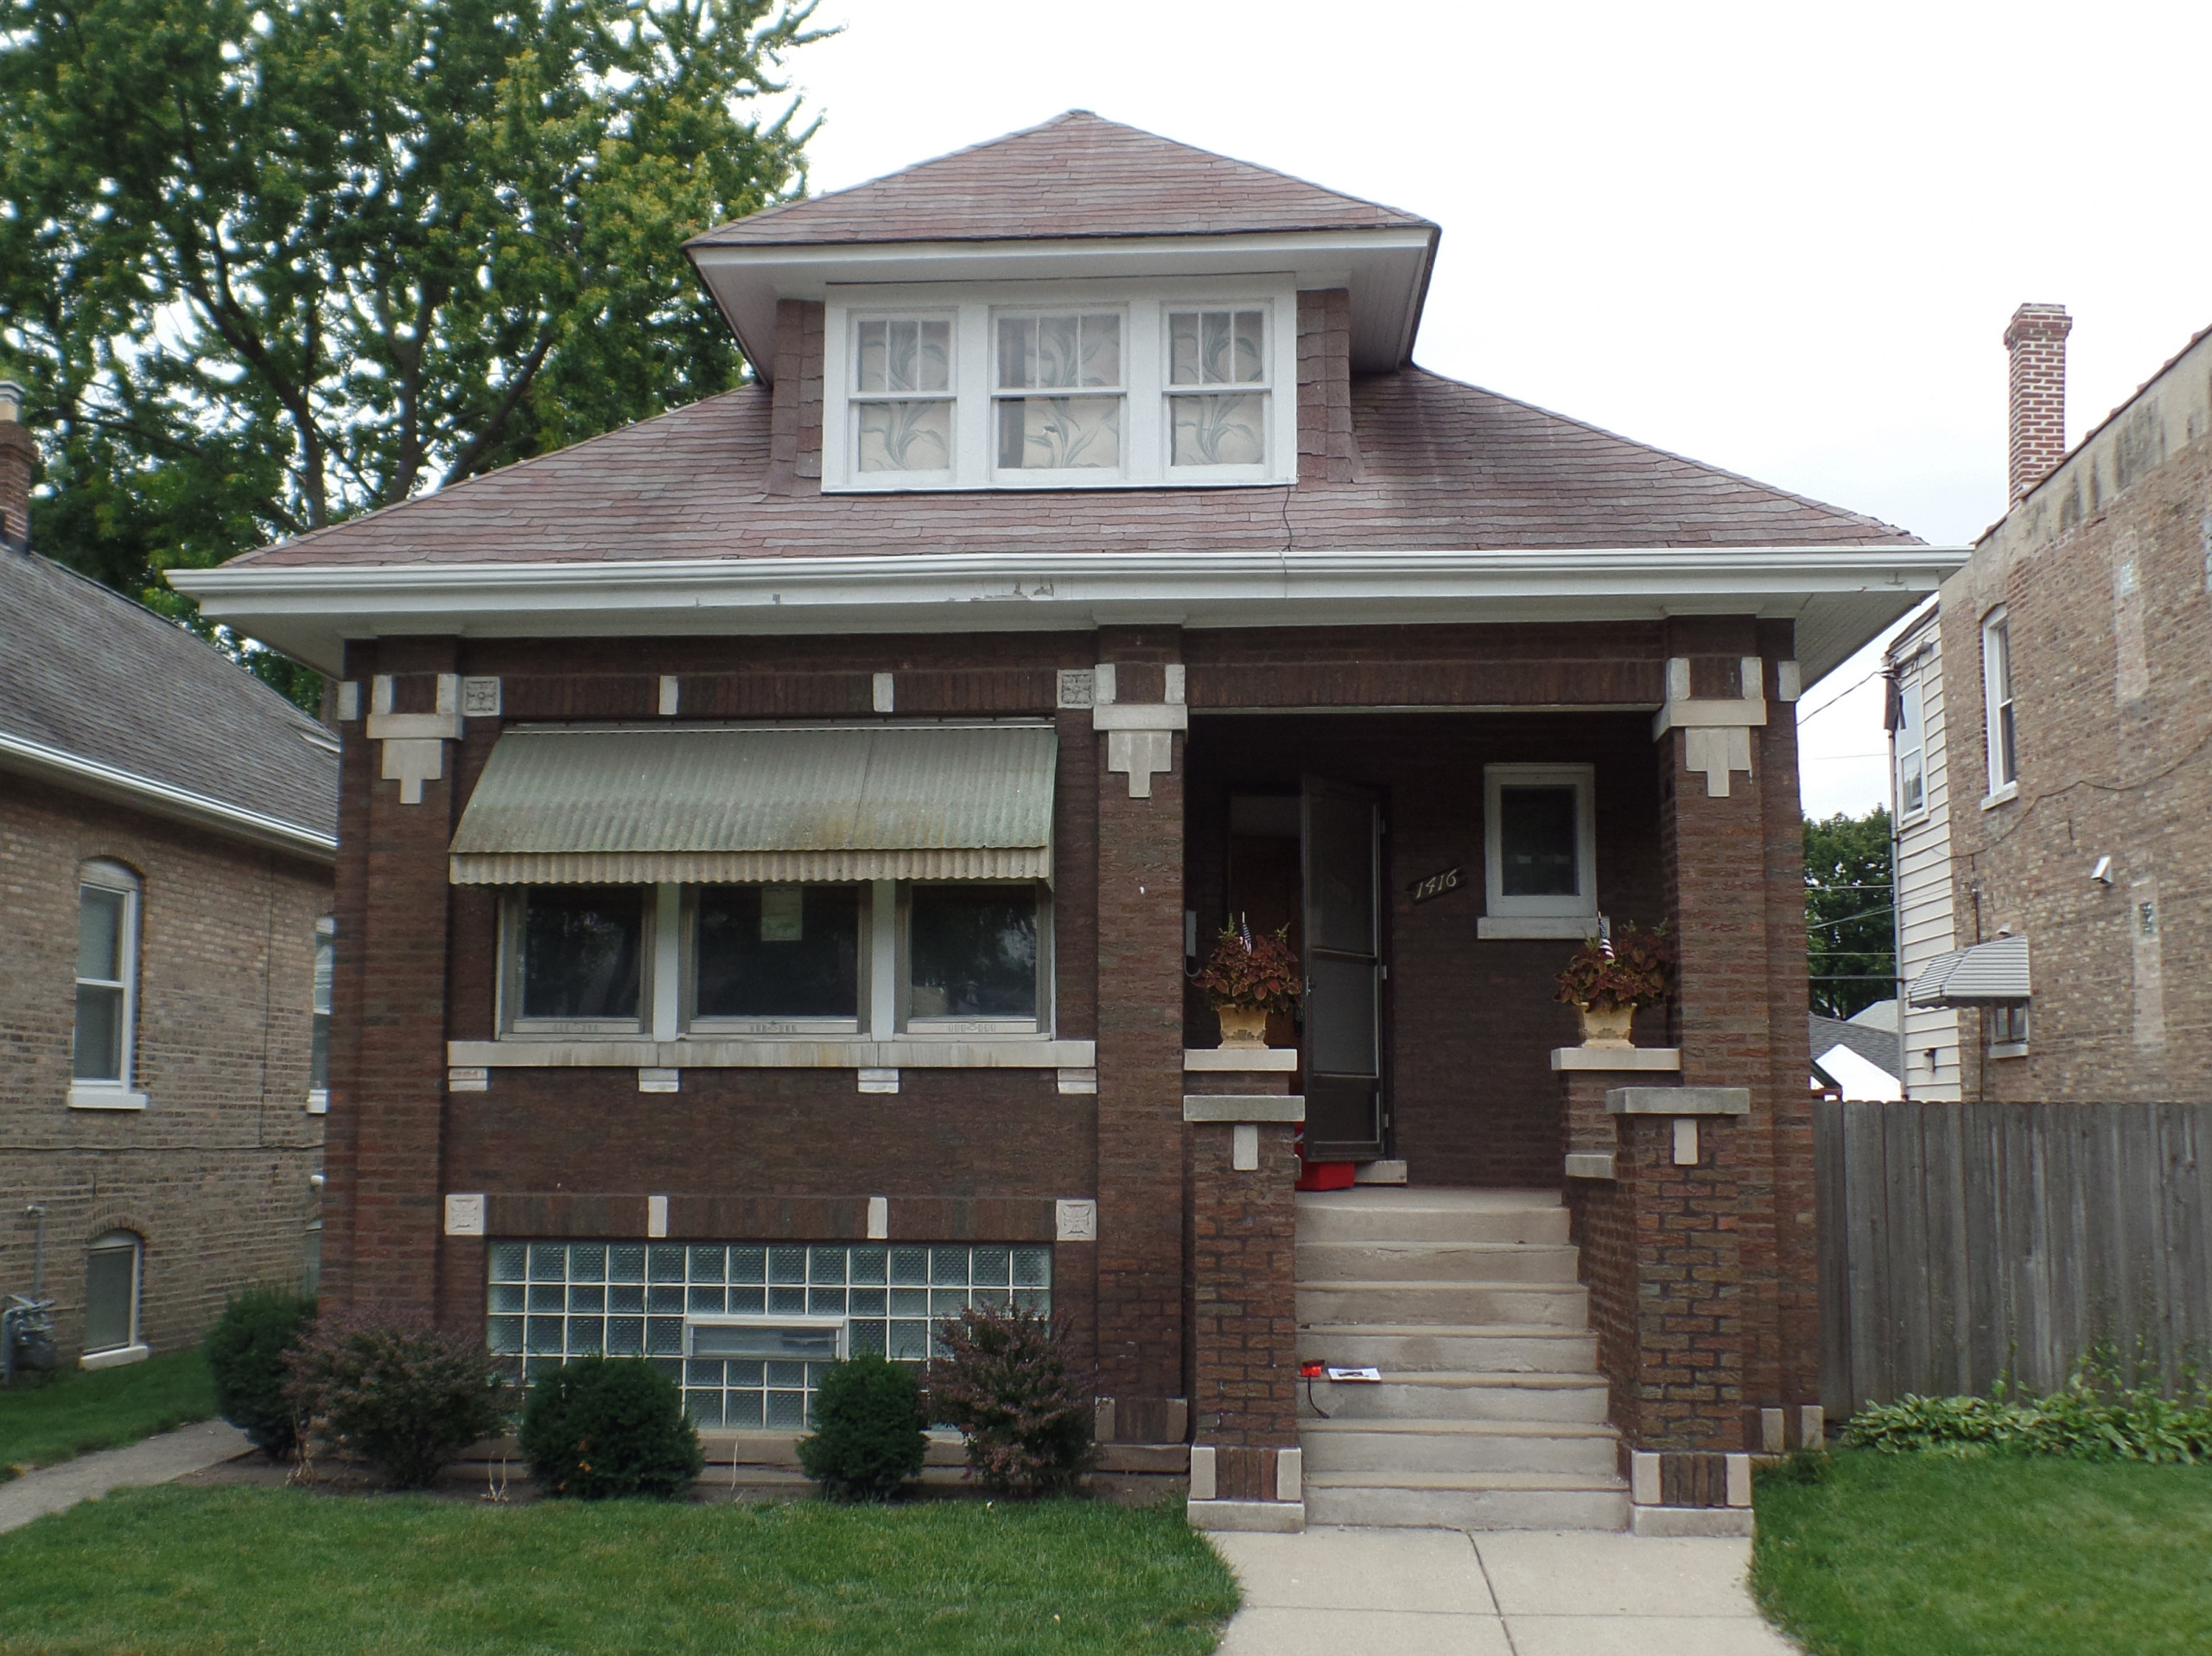 Bungalow Restoration and Addition - EXISTING